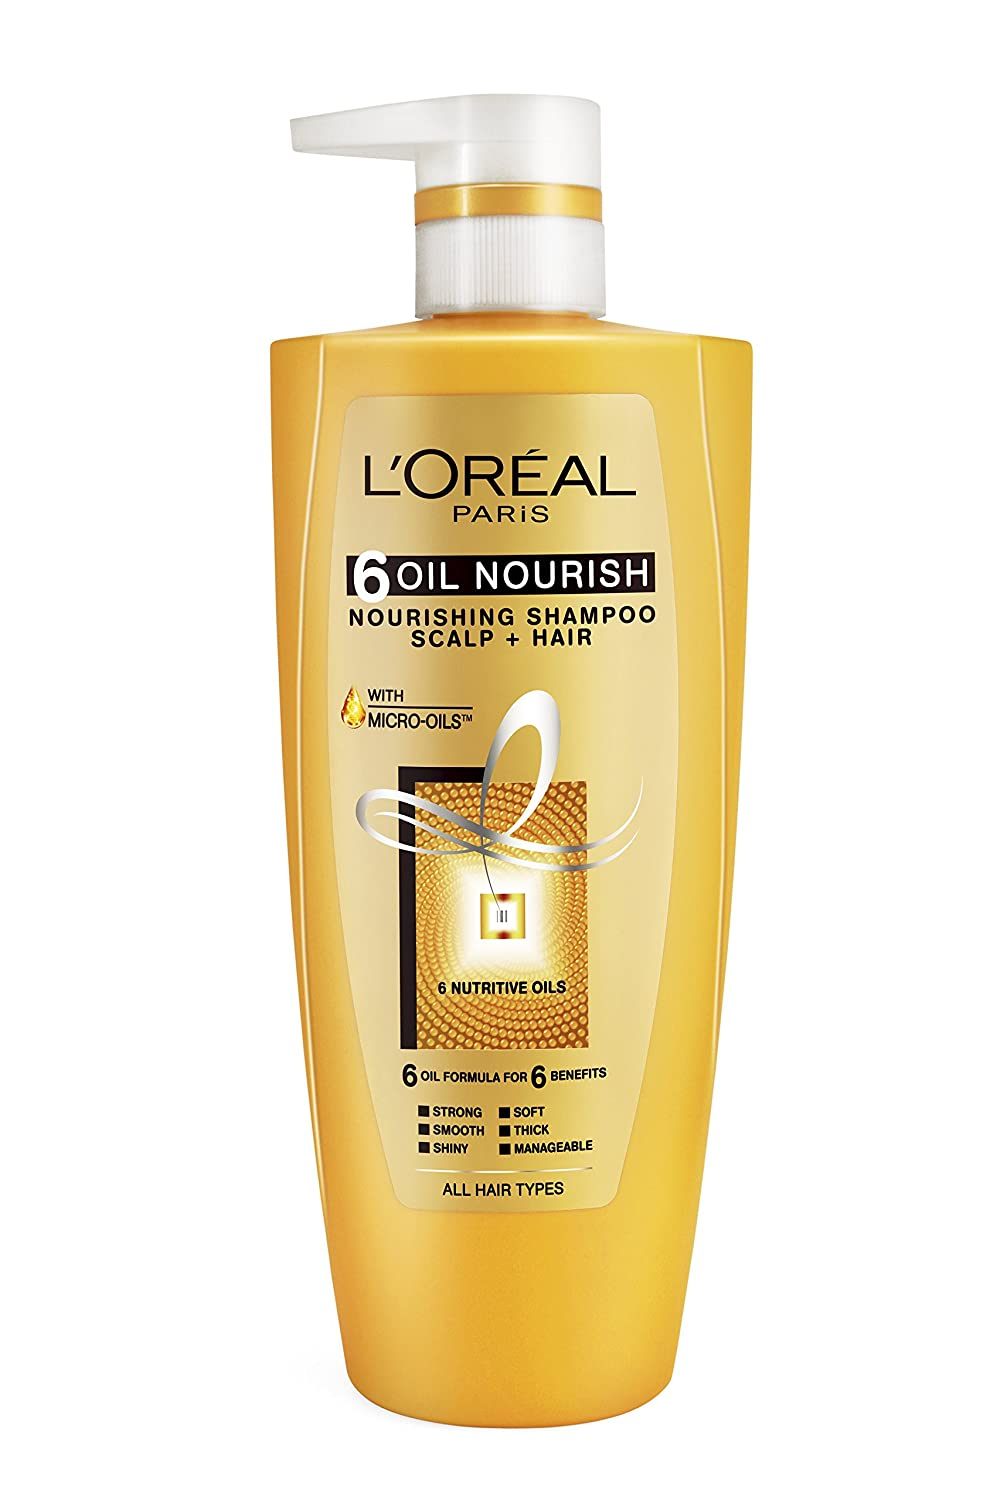 Buy Loreal Paris Hex 6 Oil Shampoo 640ml 64ml Free Online At Low Fall Repair Prices In India